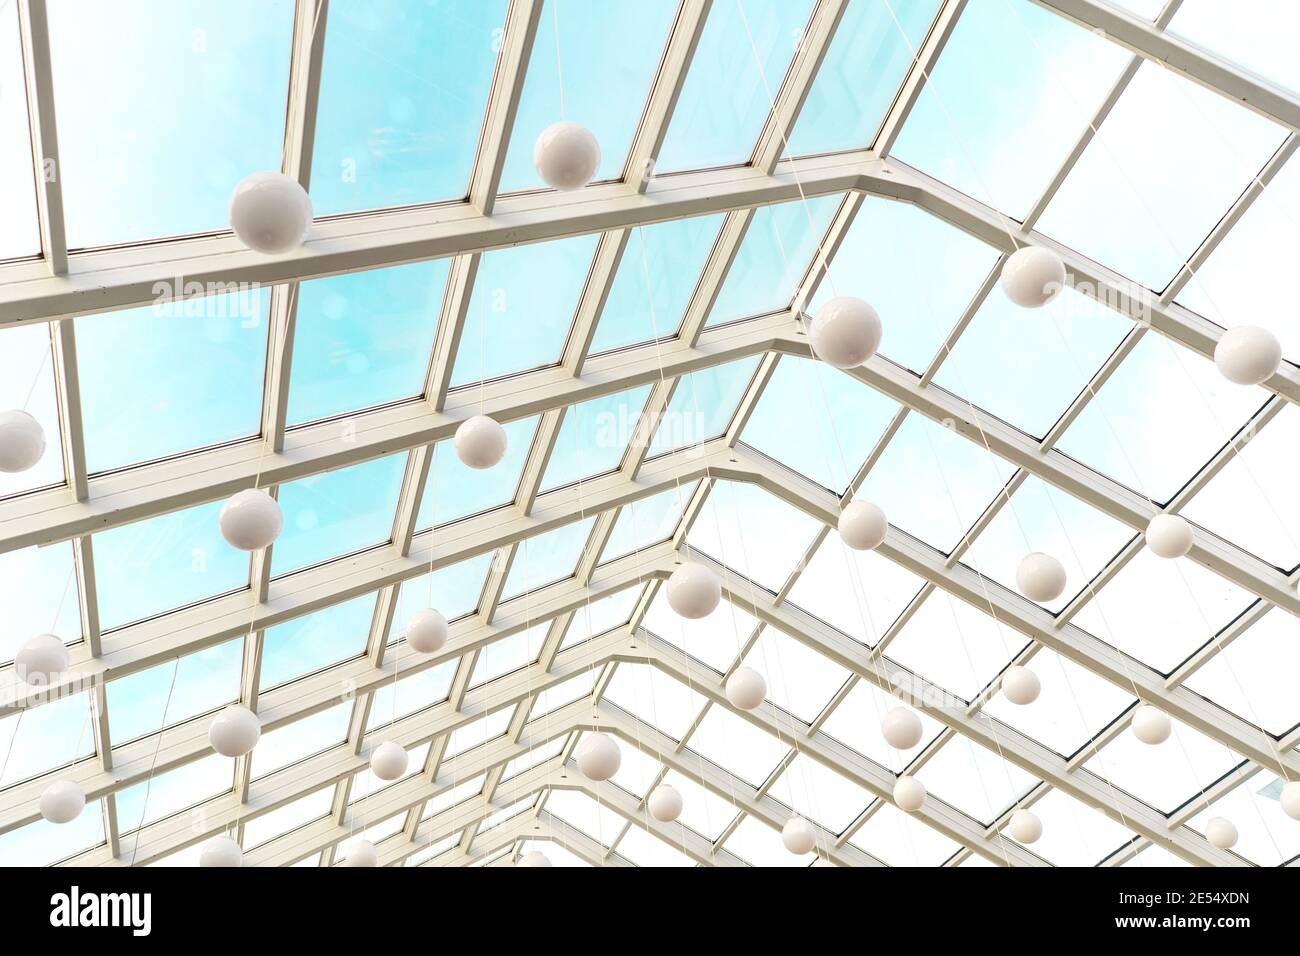 Modern transparen roof in futuristic interior with white arches in perspective. Sphere white lamps. Stock Photo